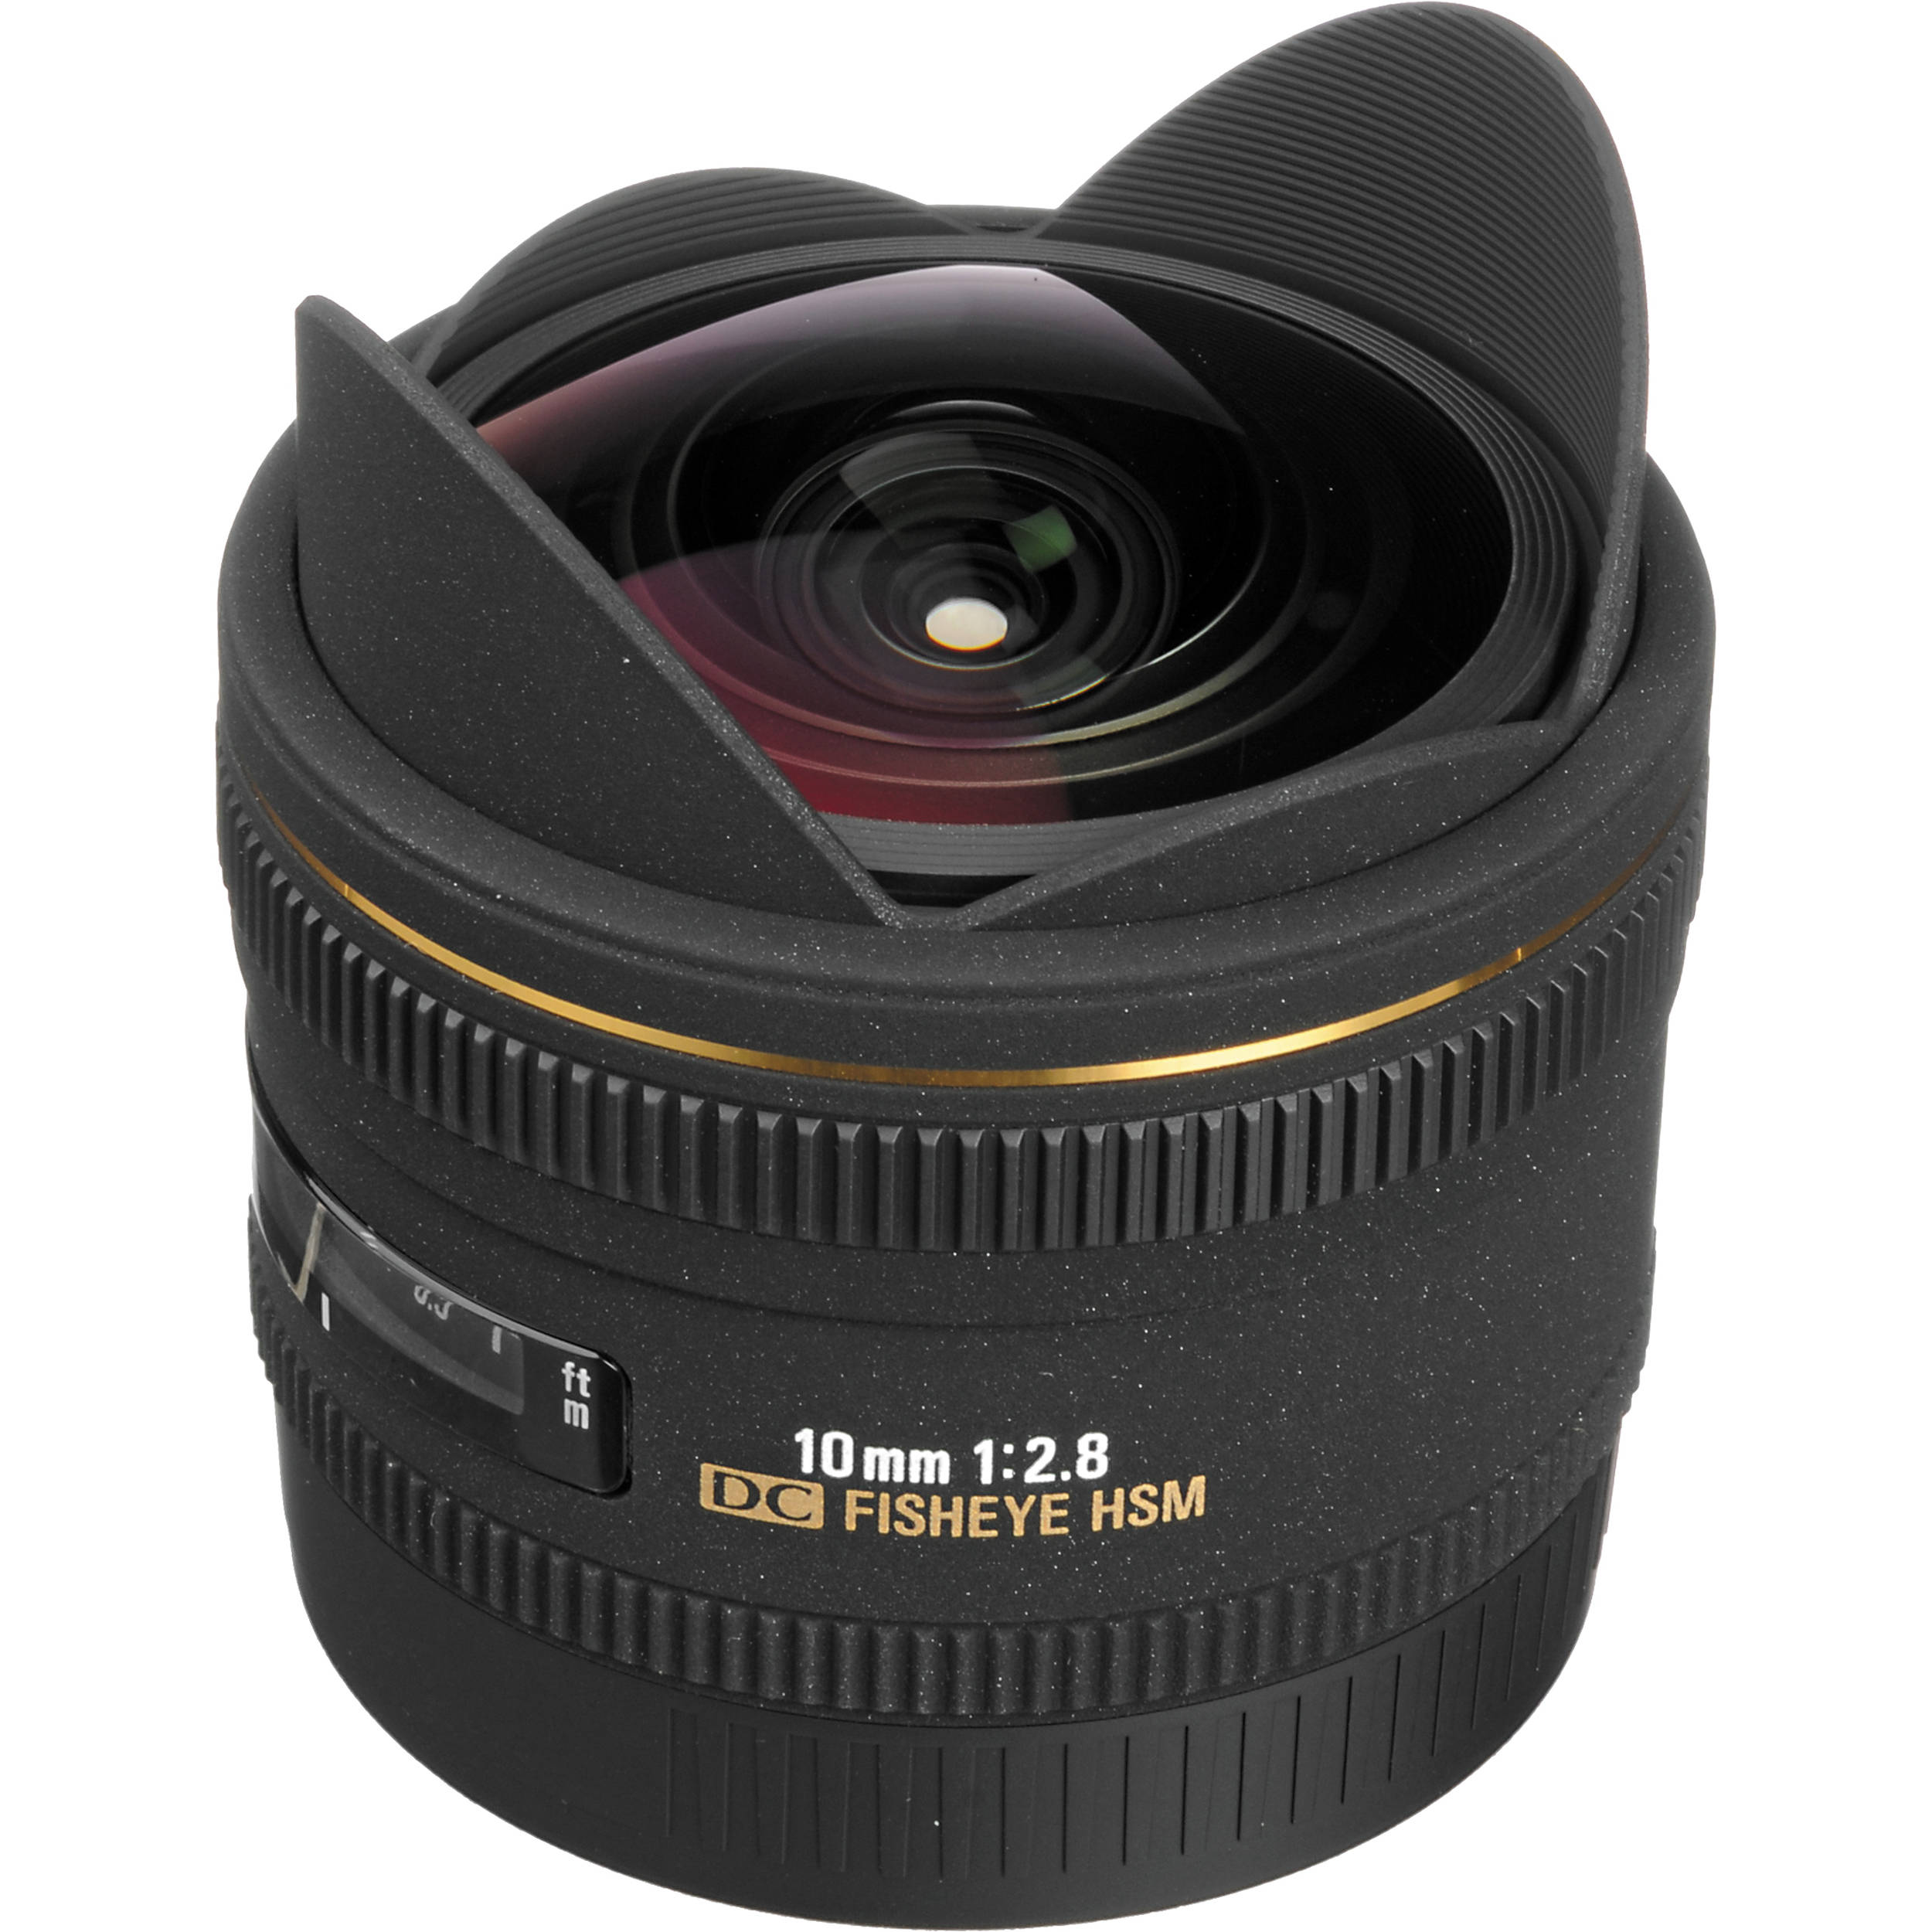 Image of Sigma 10mm f/2.8 EX DC Fisheye HSM Lens For Canon Mount